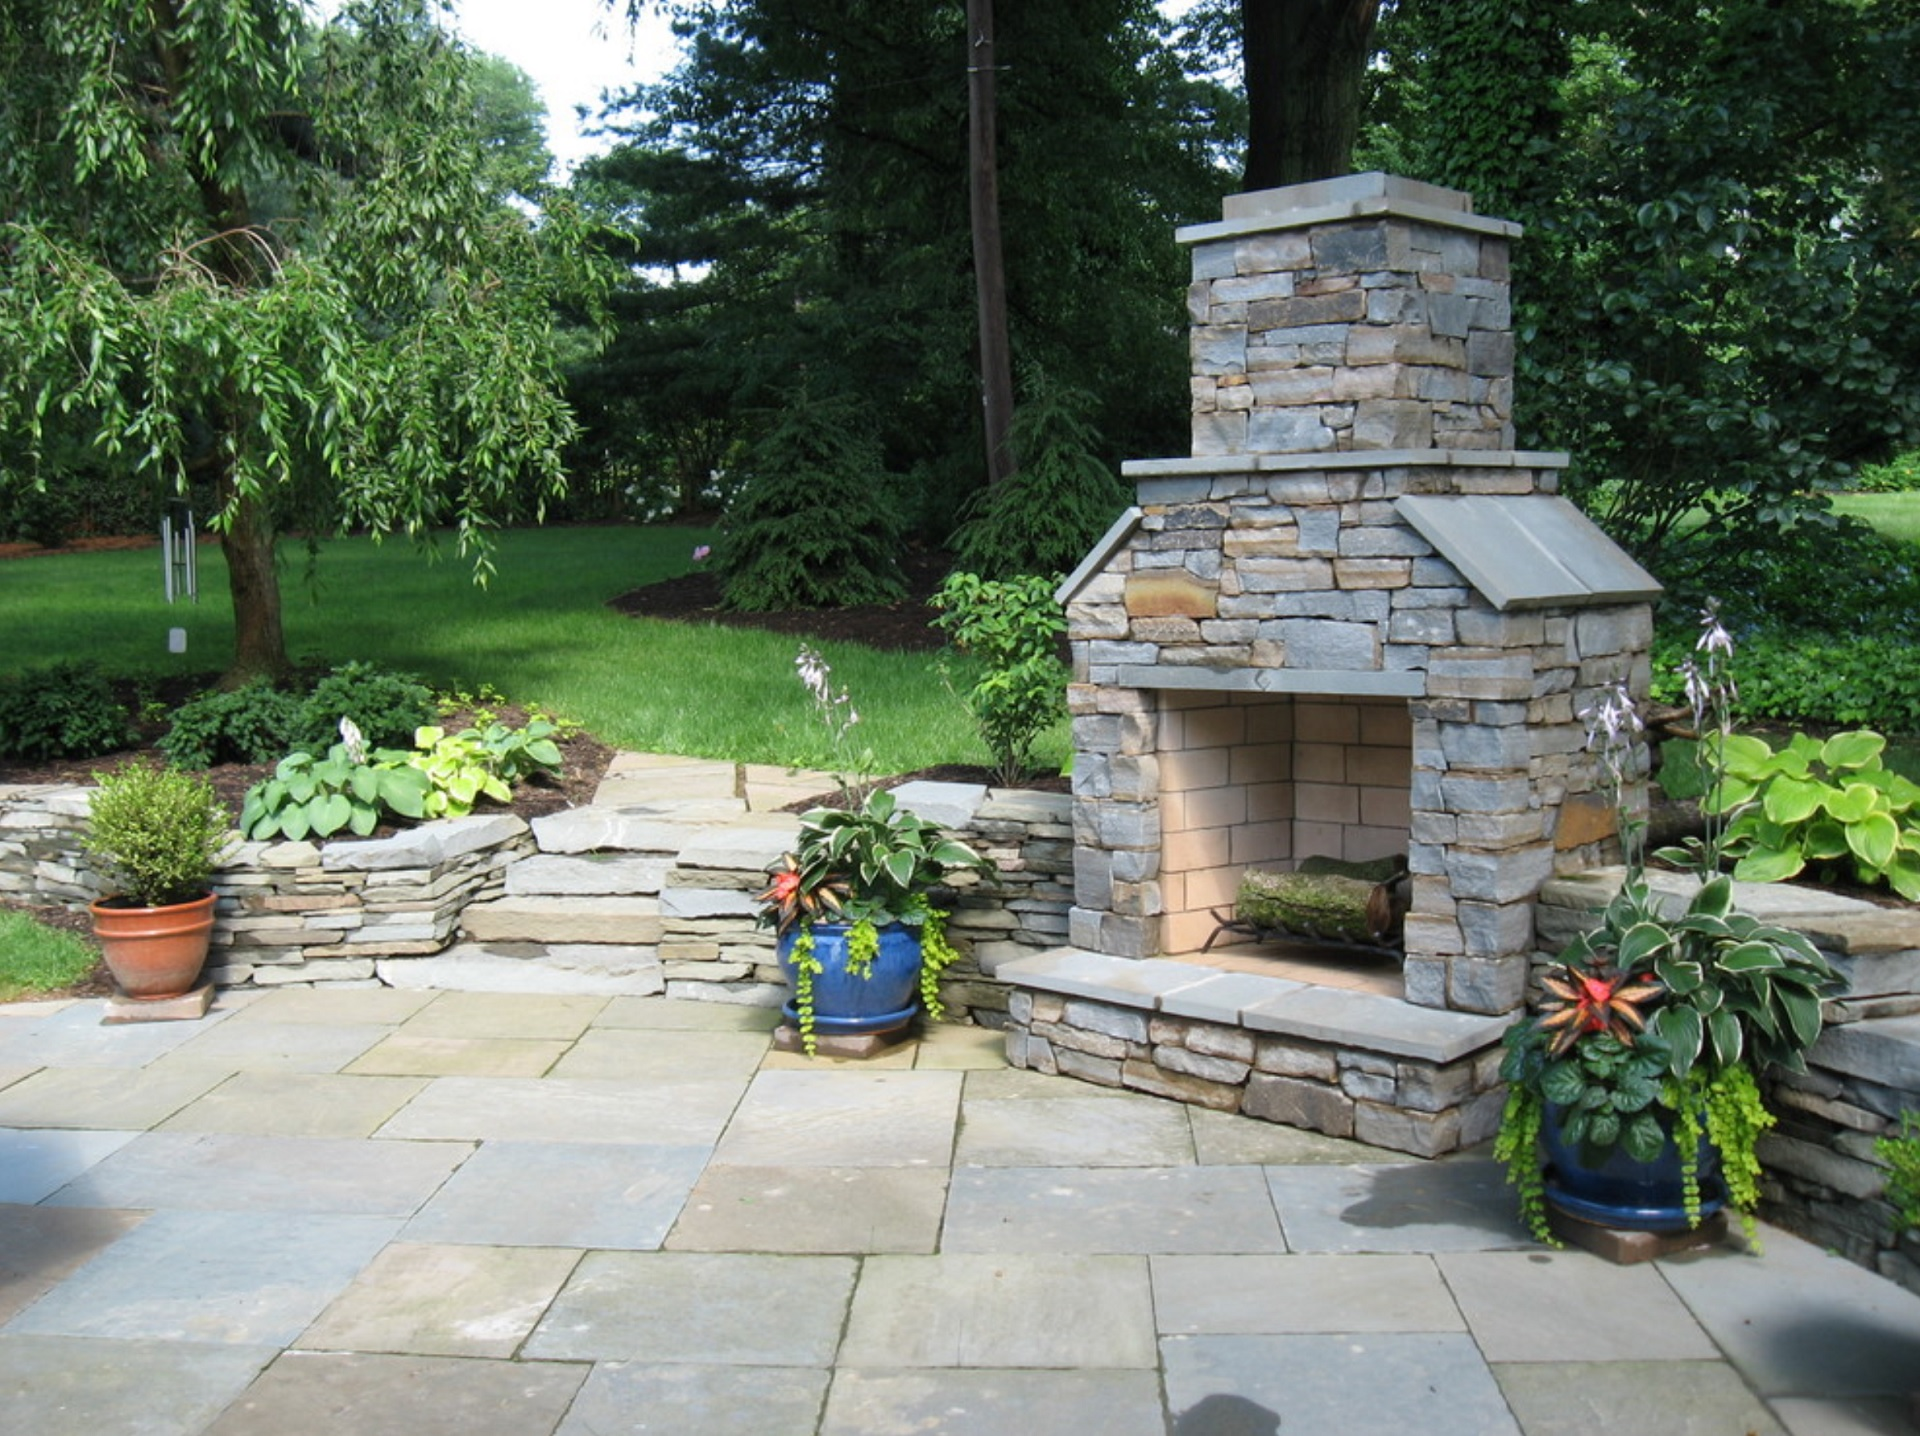 Lititz, PA outdoor fireplace and flagstone patio